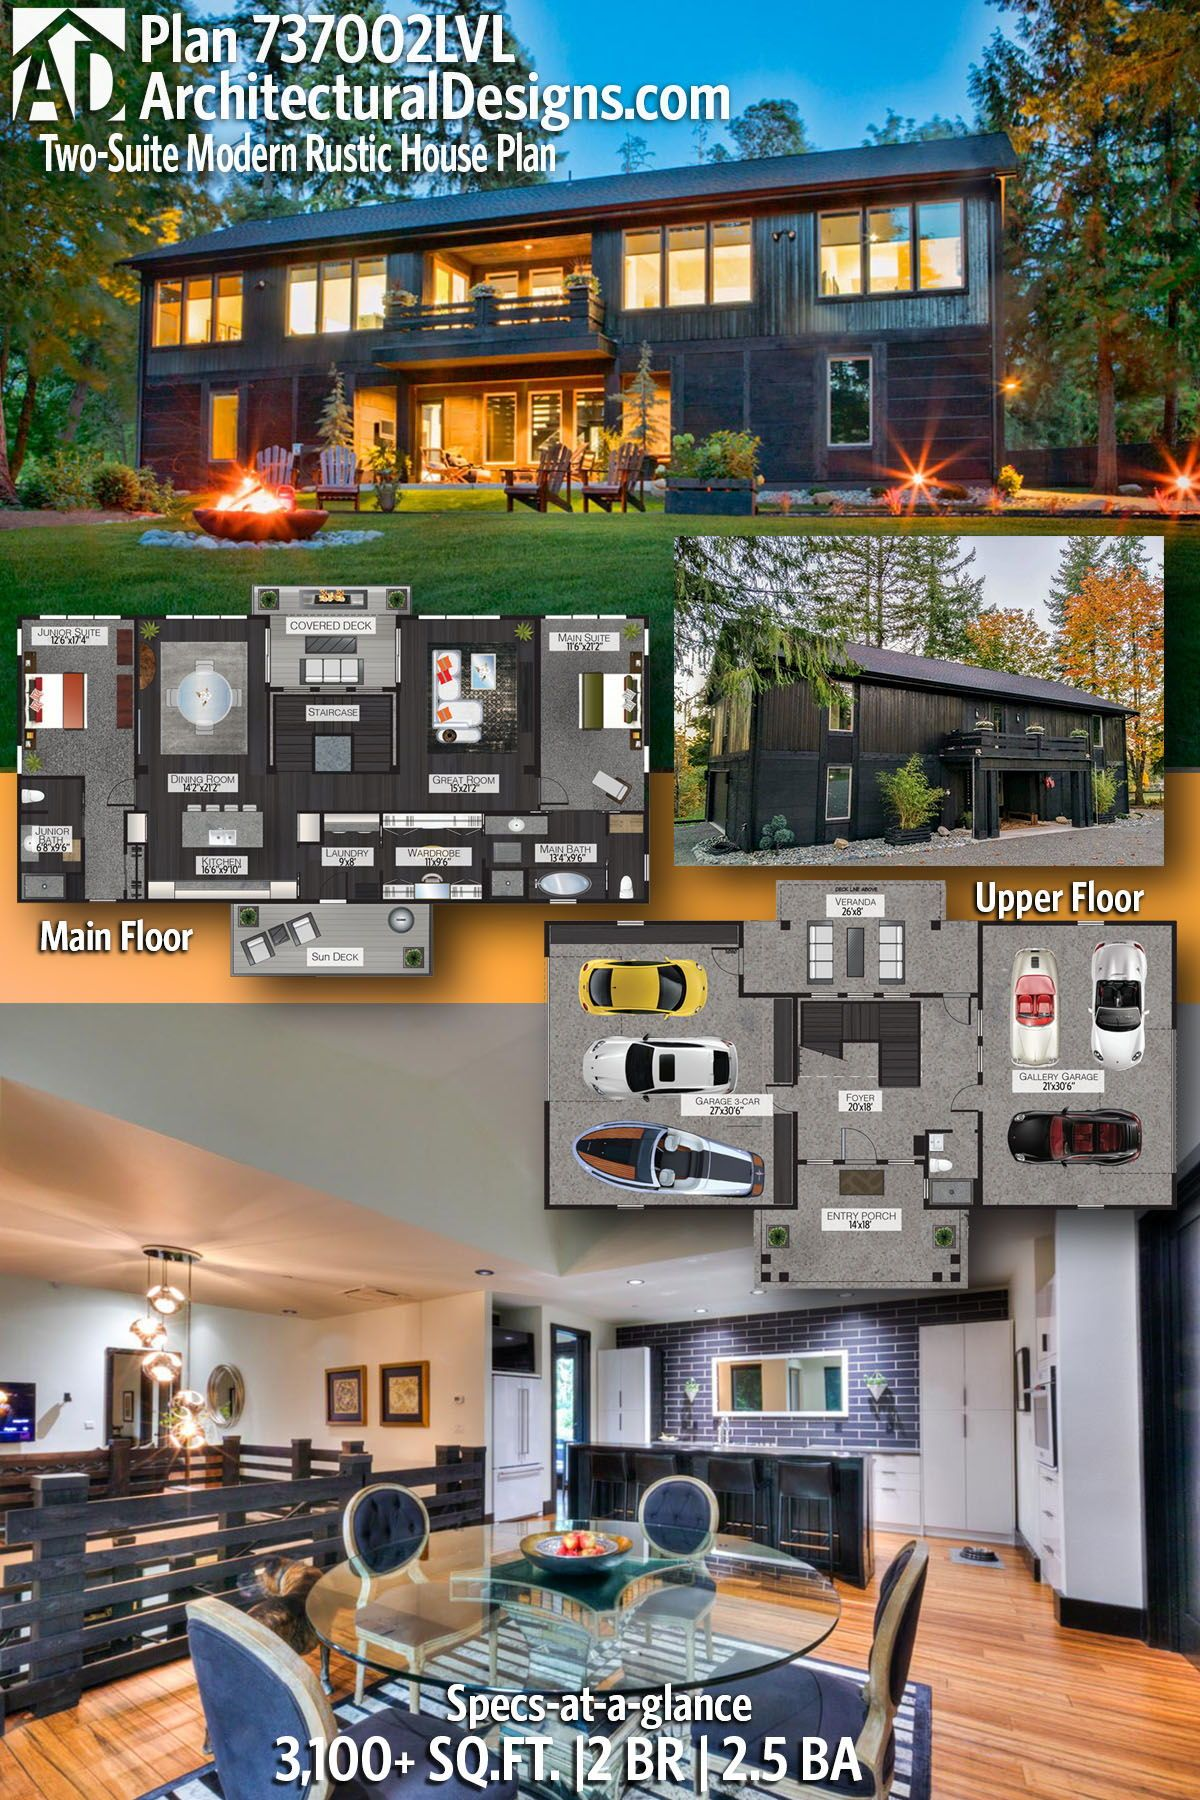 Plan 737002lvl Modern Barndominium House Plan With Two Bedroom Suites In 2021 Rustic House Plans Barn Style House Plans Rustic House